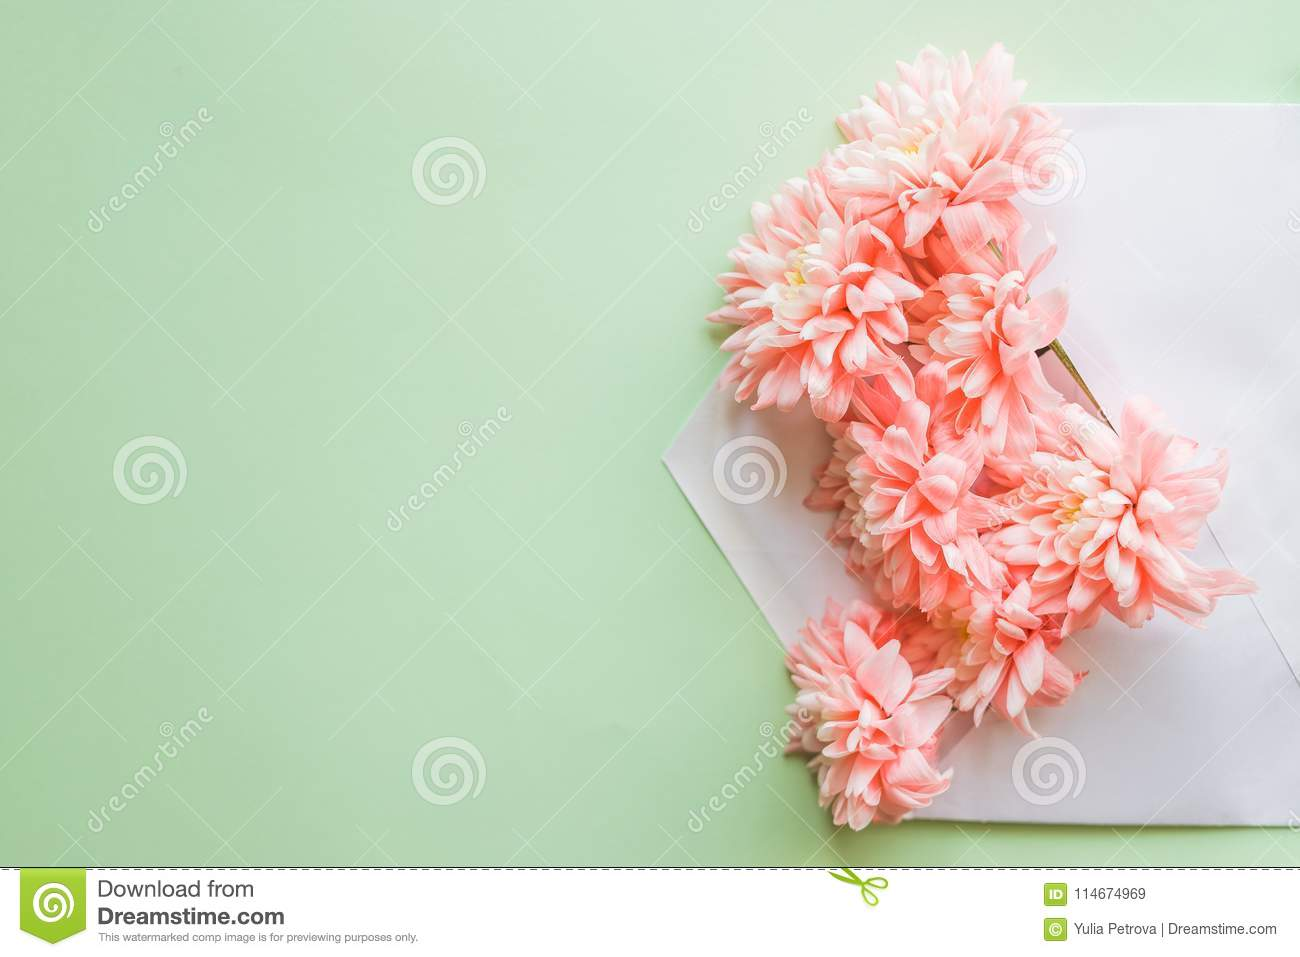 Flower Composition For Greeting Cardwith Chrysanthemums And